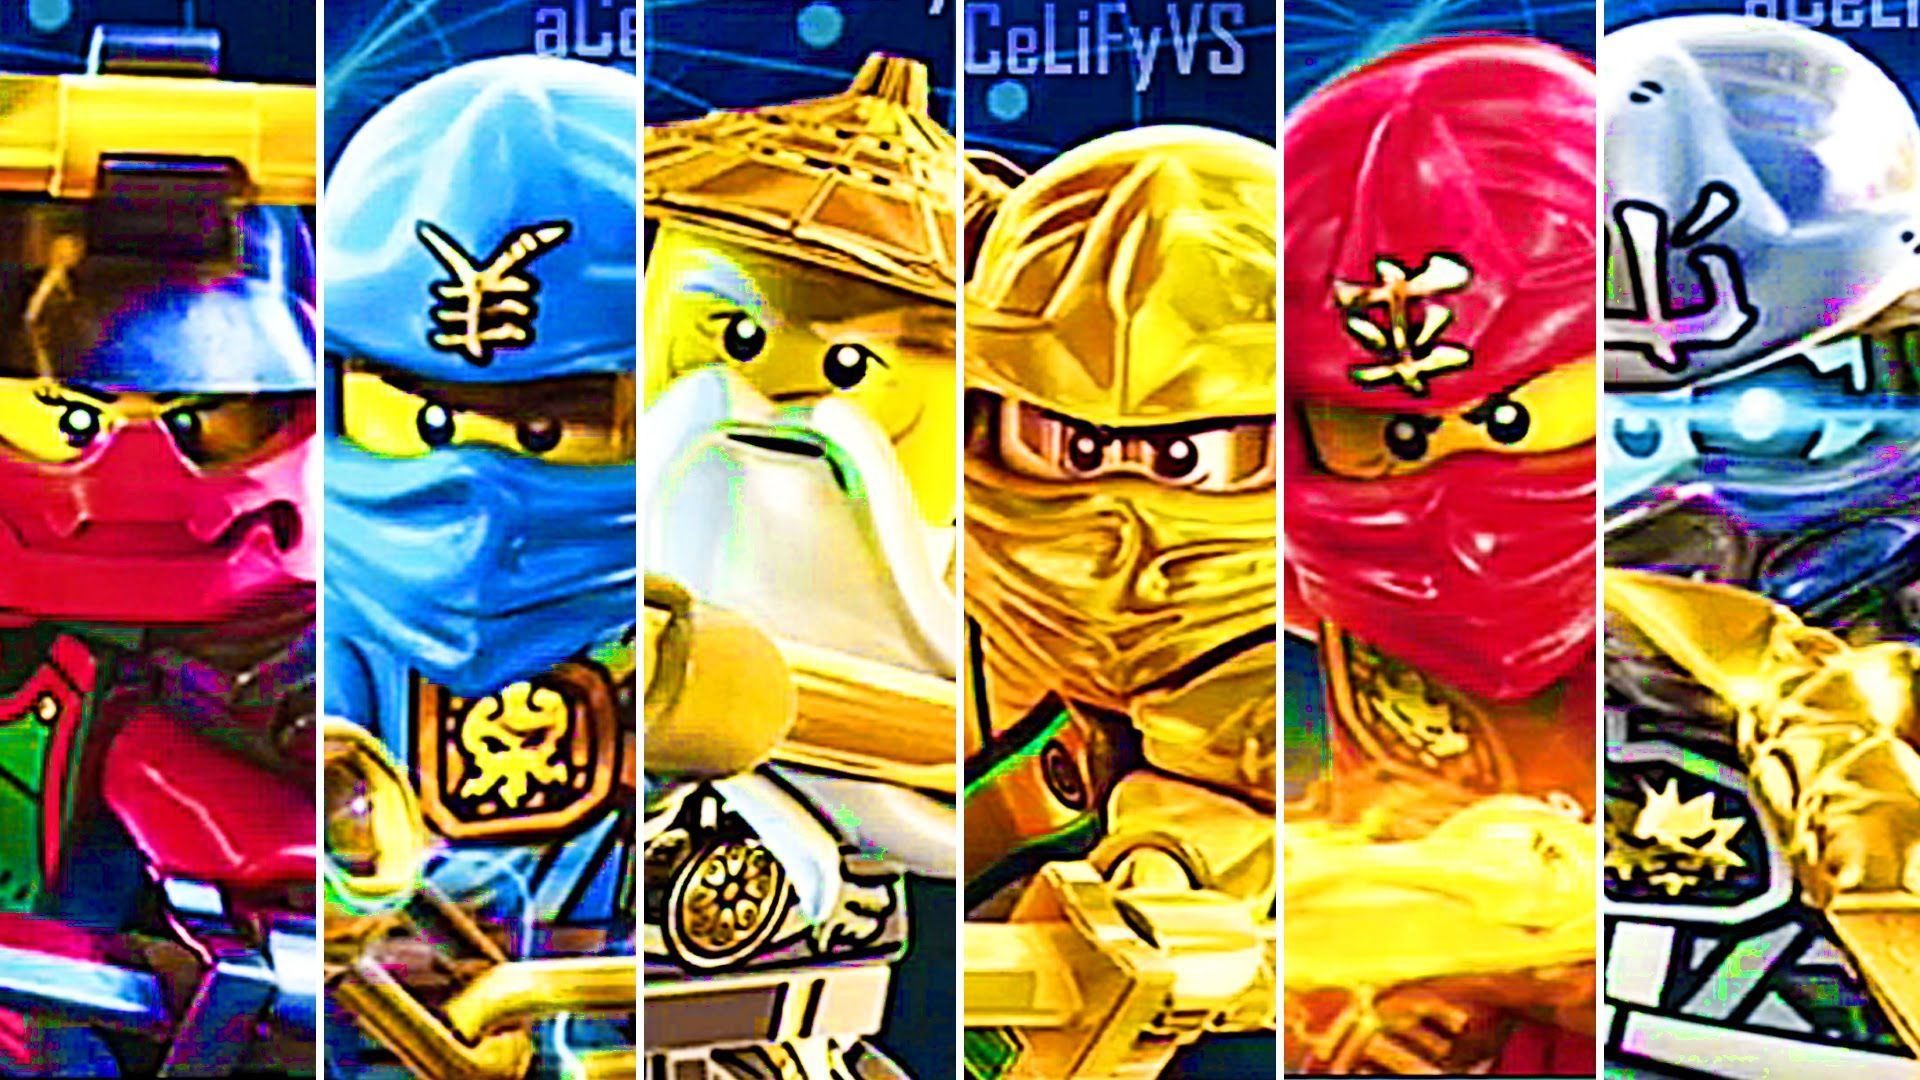 LEGO Ninjago 2014 Wallpapers - Top Free LEGO Ninjago 2014 ...Ninjago Wallpaper 2014